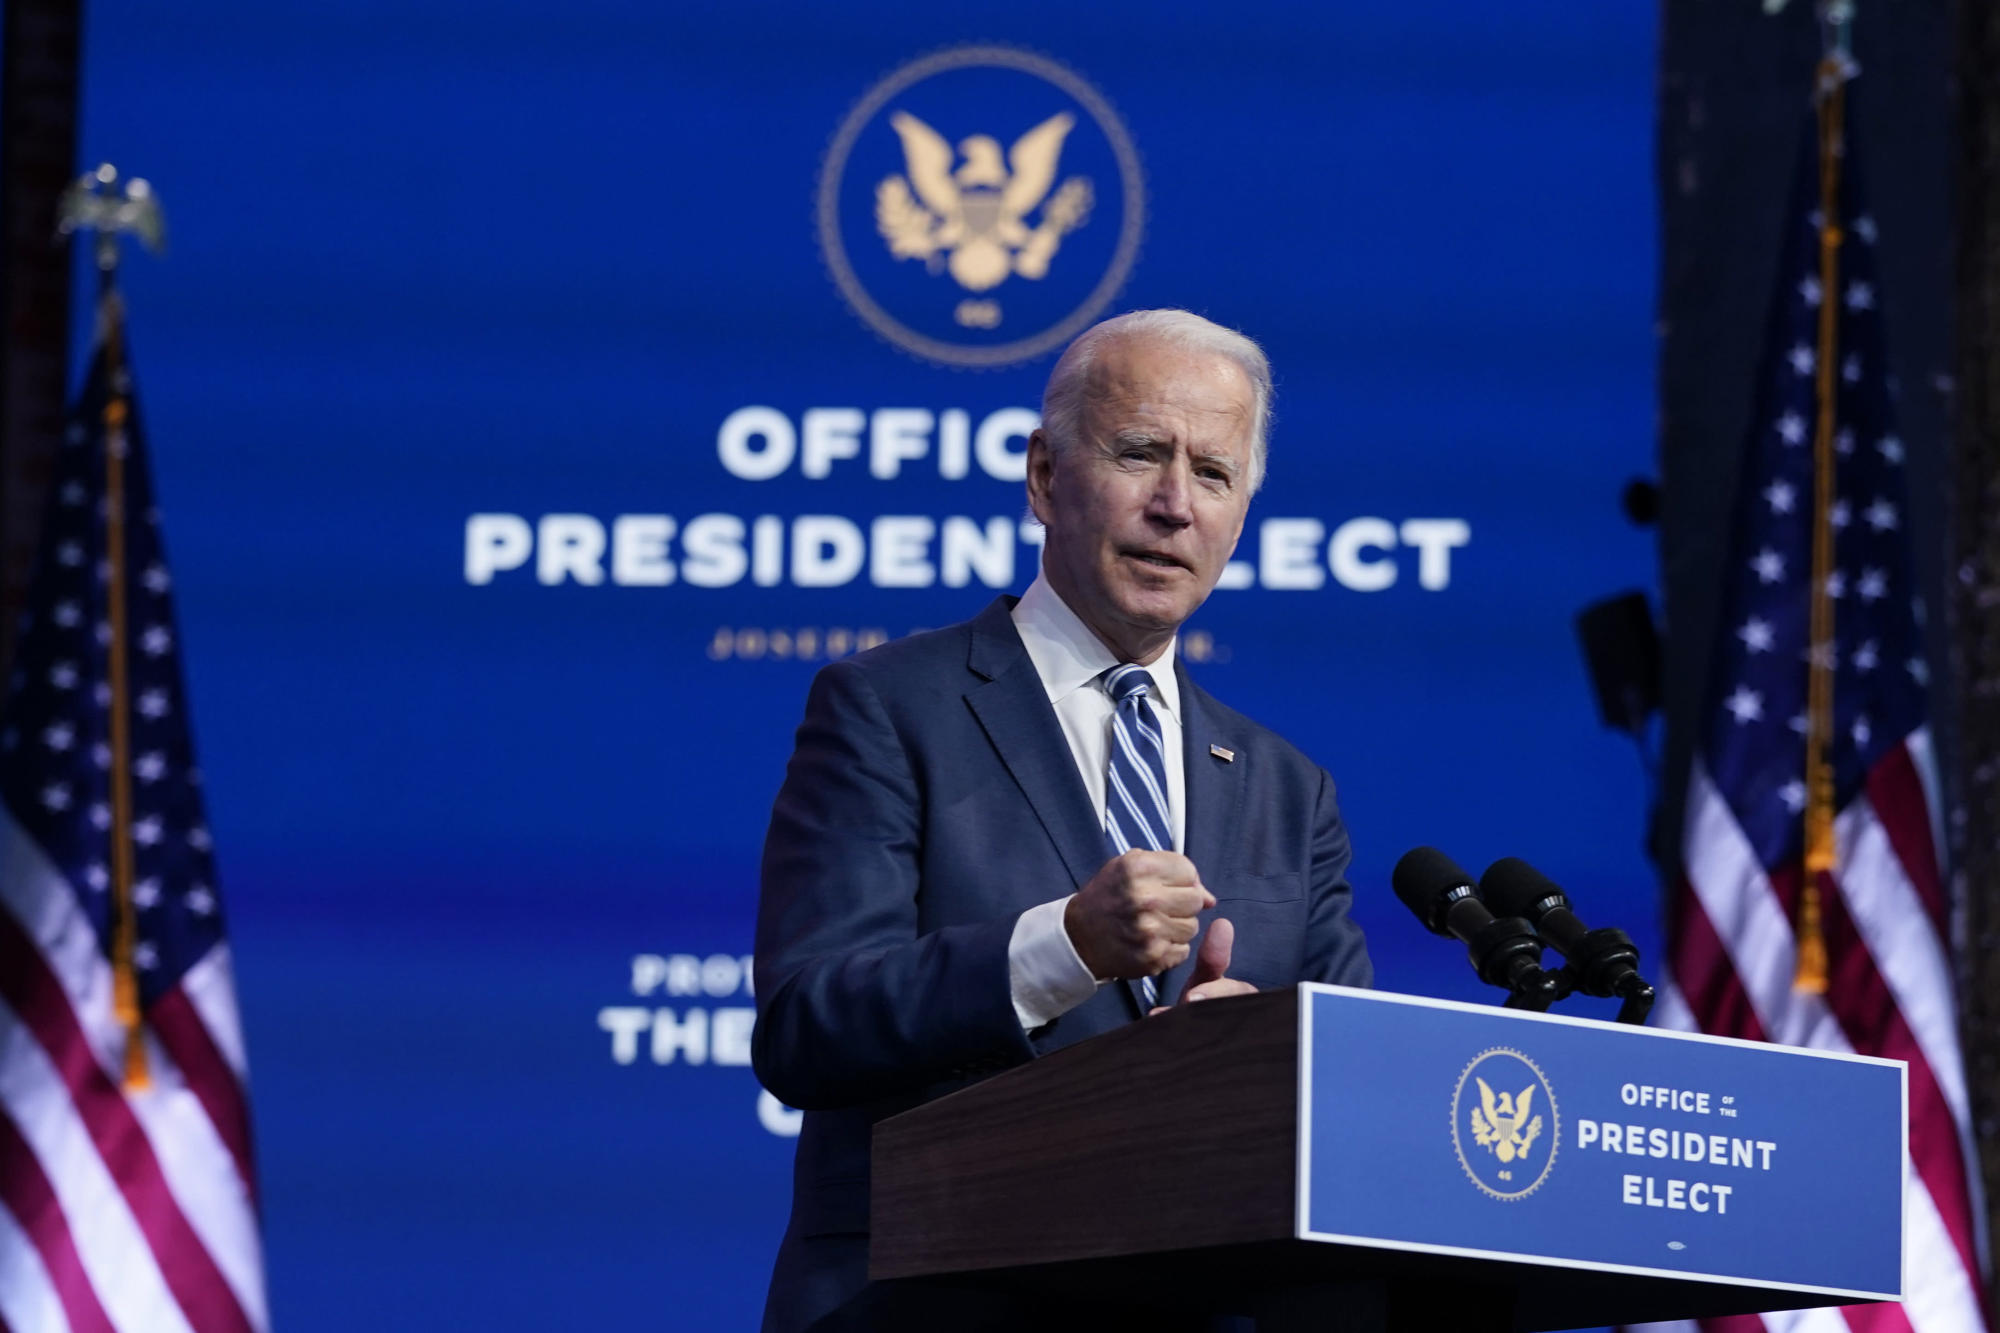 Progressives look to make early mark on Biden White House